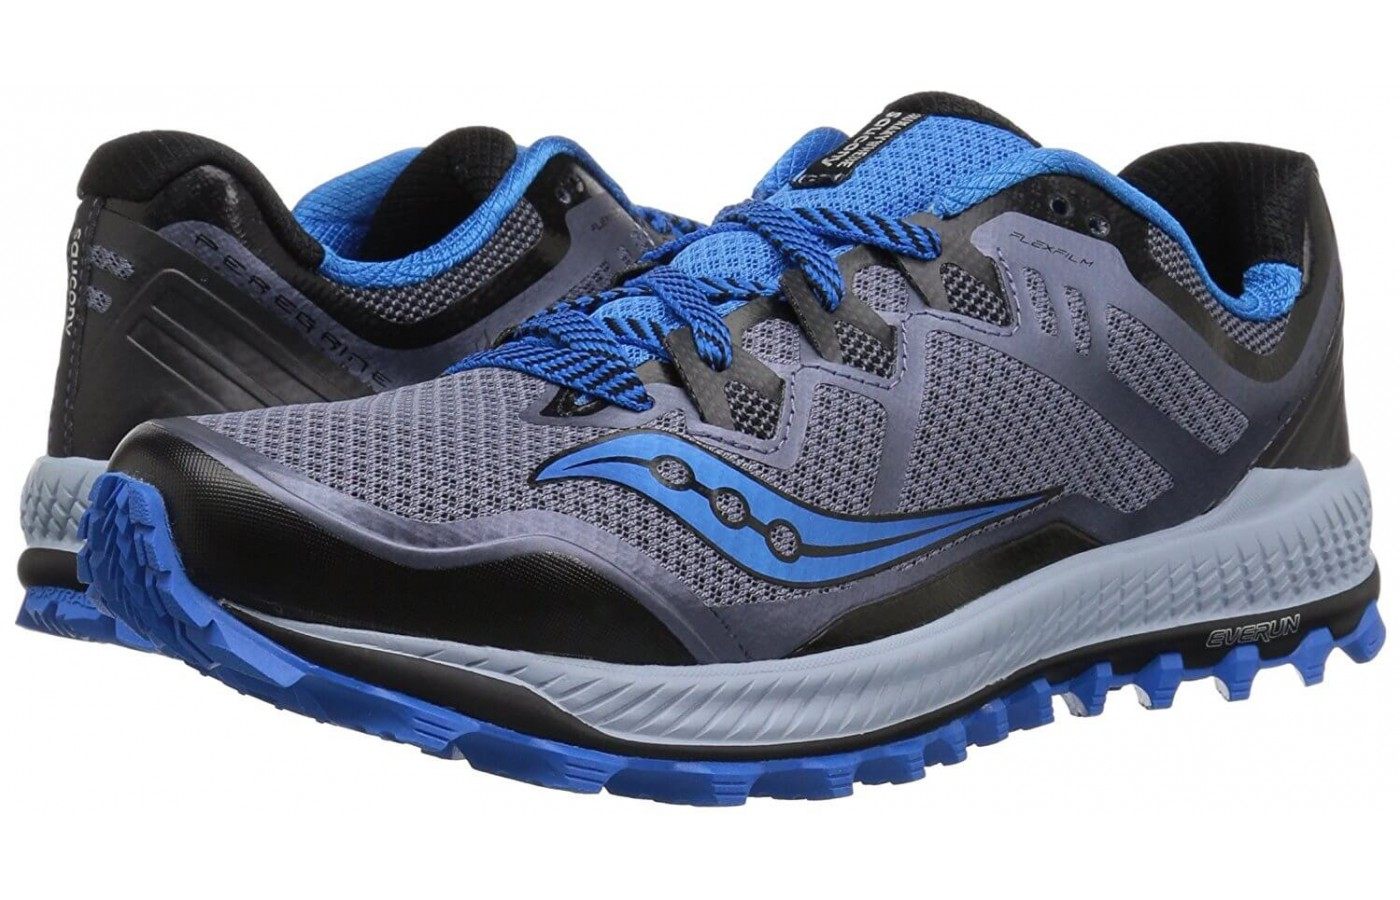 The Saucony Peregrine 8 has an attached tongue to keep out dirt and debris